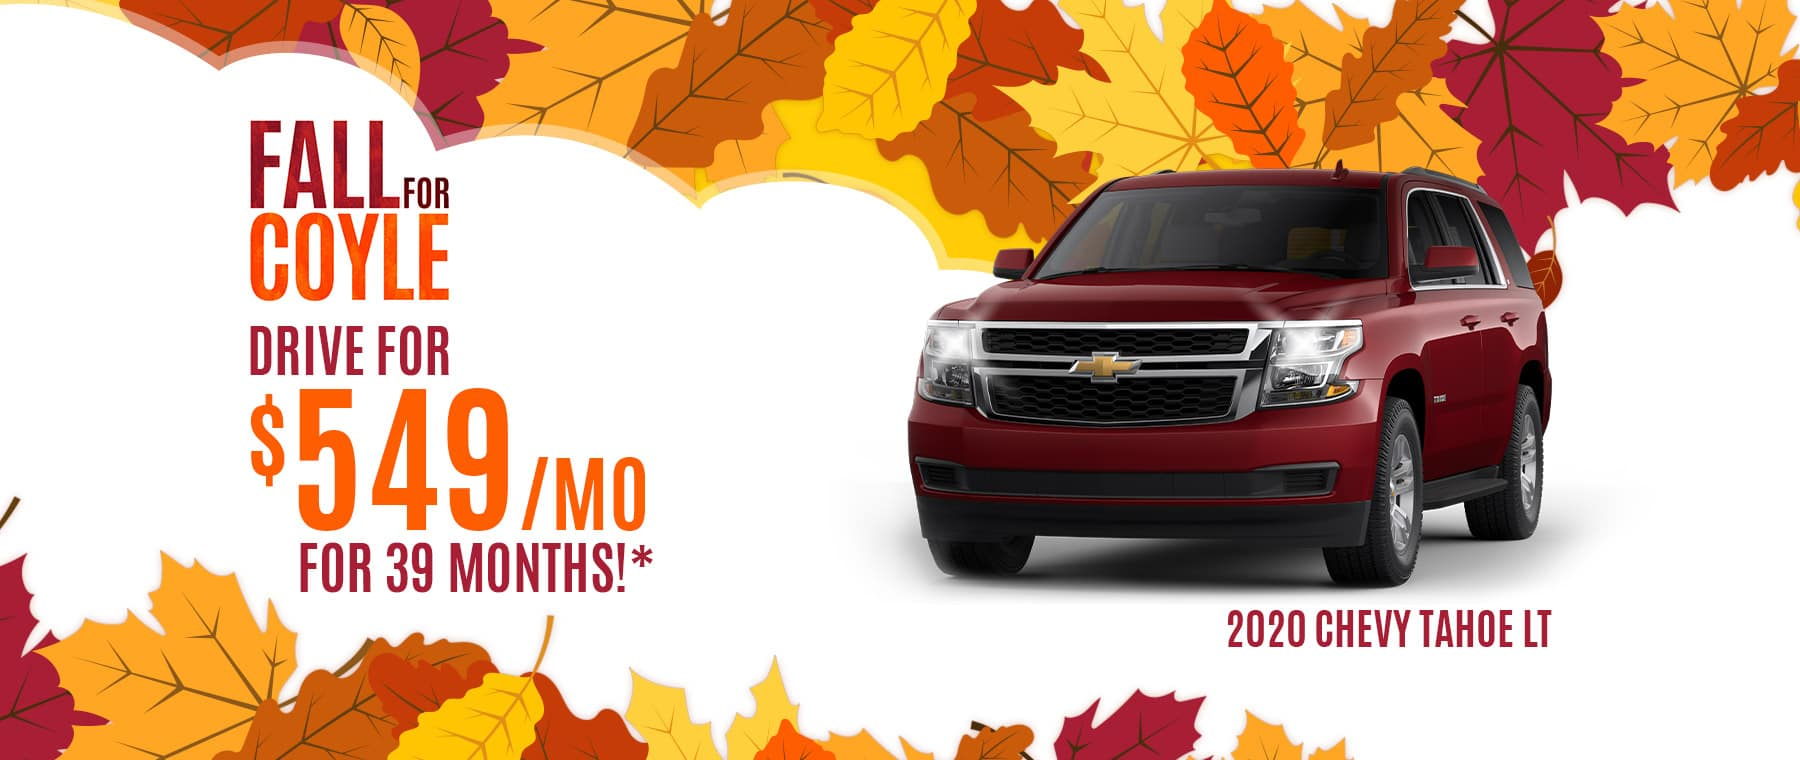 Lease offer on a new Tahoe near Sellersburg, Indiana